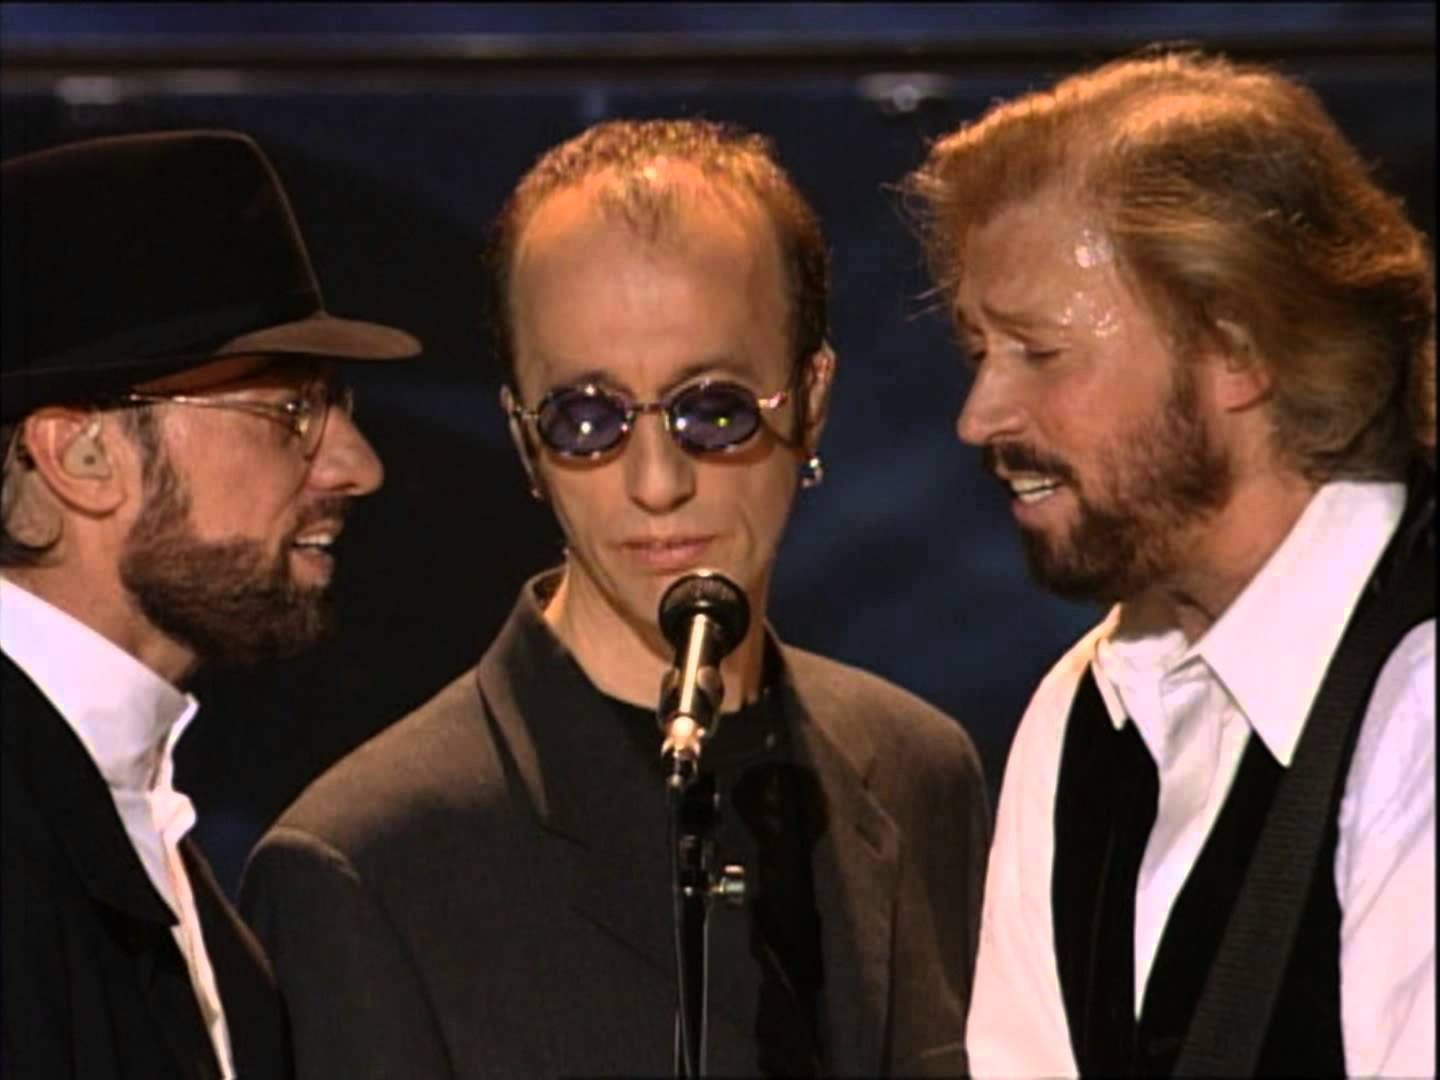 Bee Gees Morning Of My Life Live In Las Vegas 1997 One Night Only Bee Gees Bee Gees Live Gees